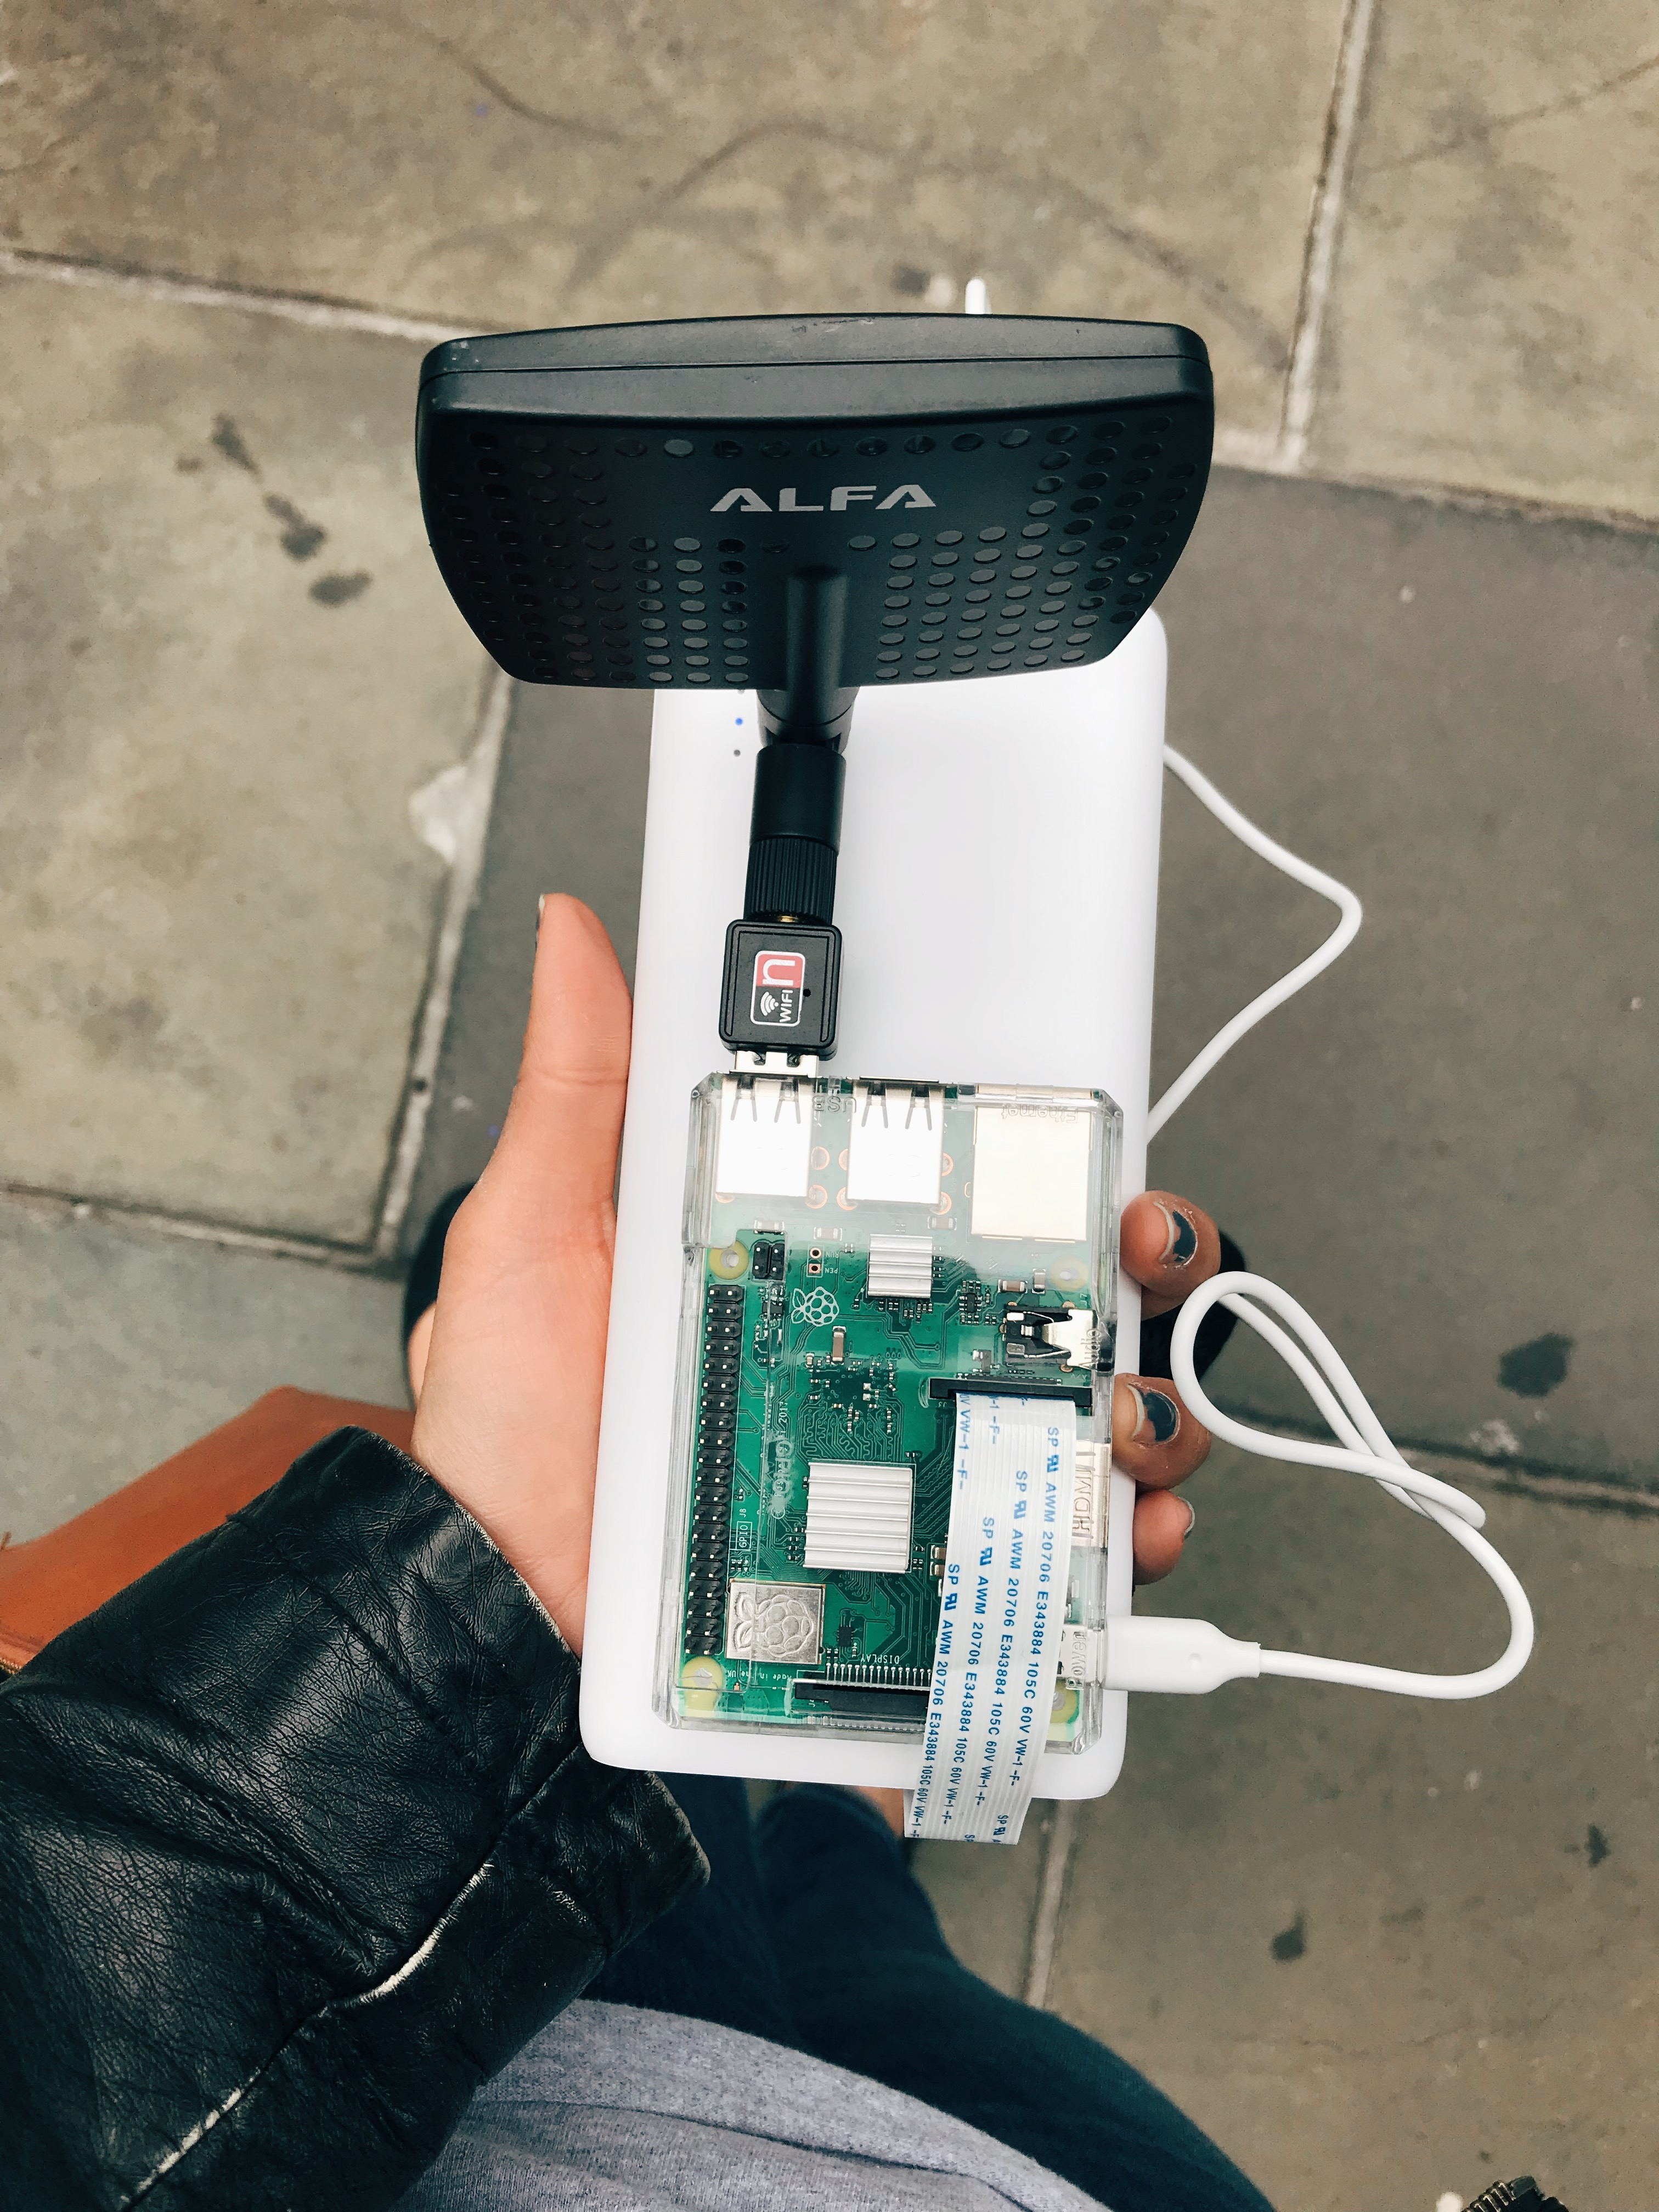 A hand holding a portable battery device and a raspberry pi with WiFi antenna attached.